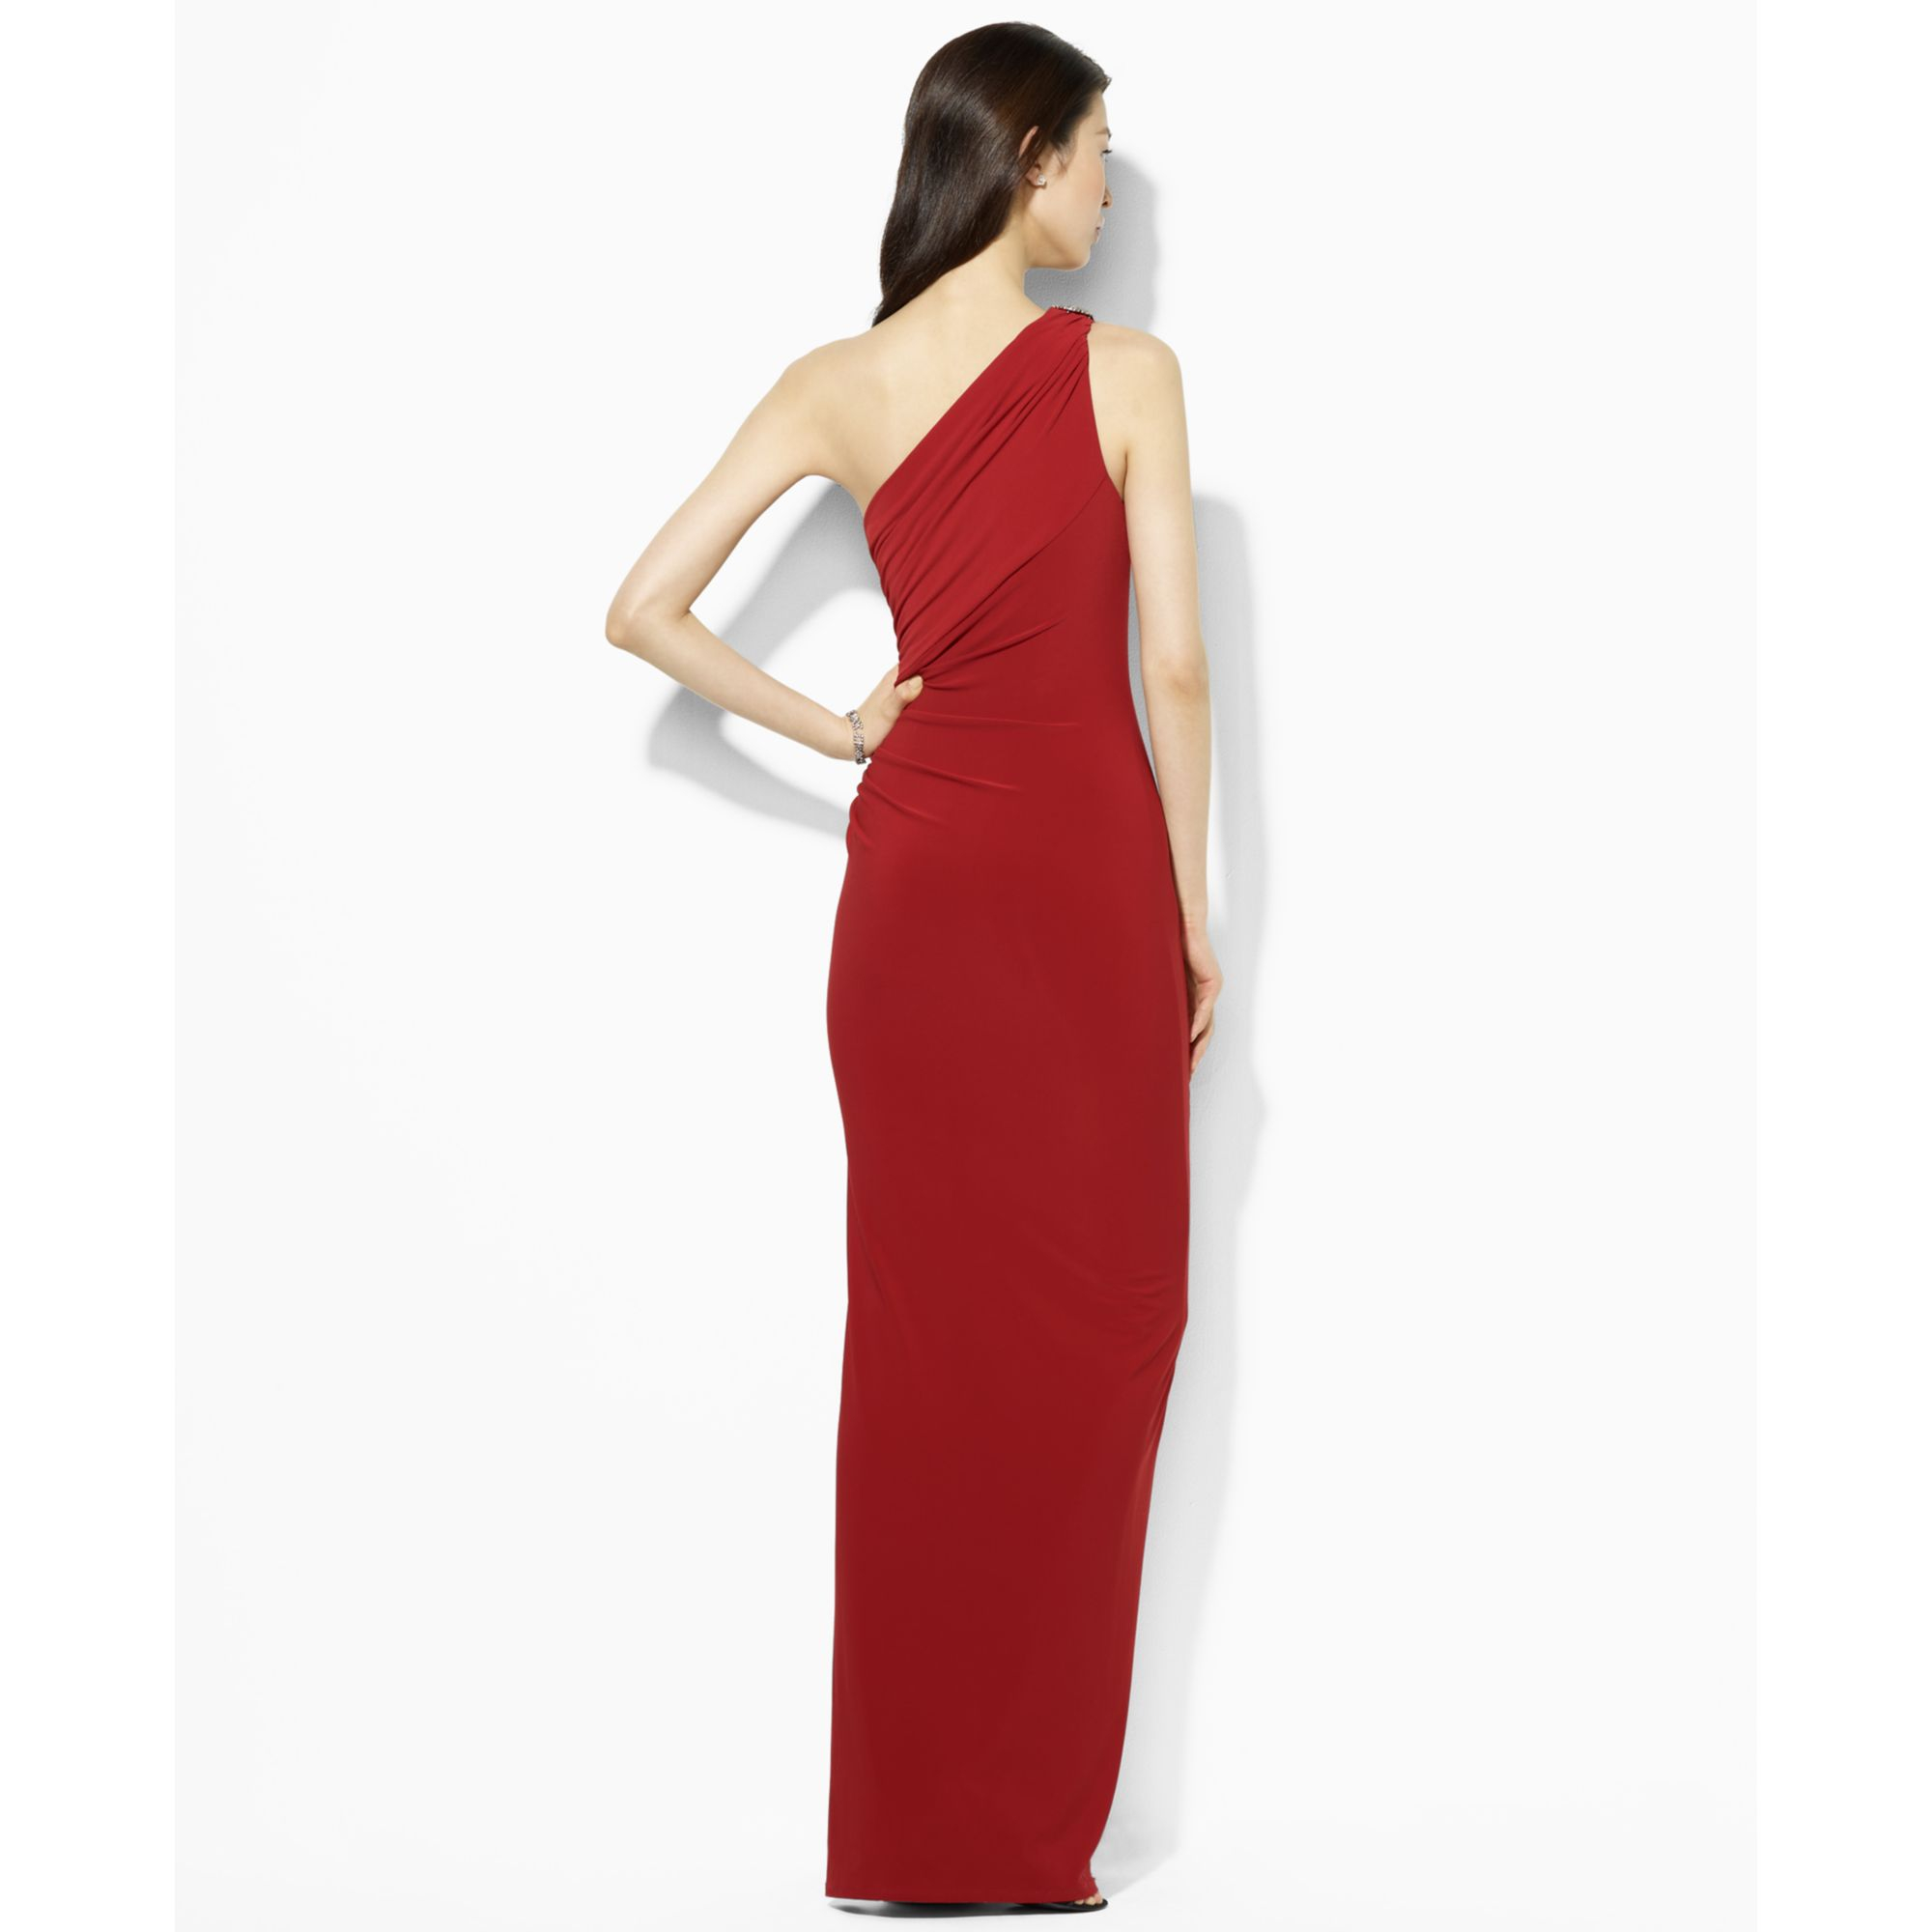 a889257057 Lauren by Ralph Lauren Lauren By Ralph Lauren Dress One Shoulder ...